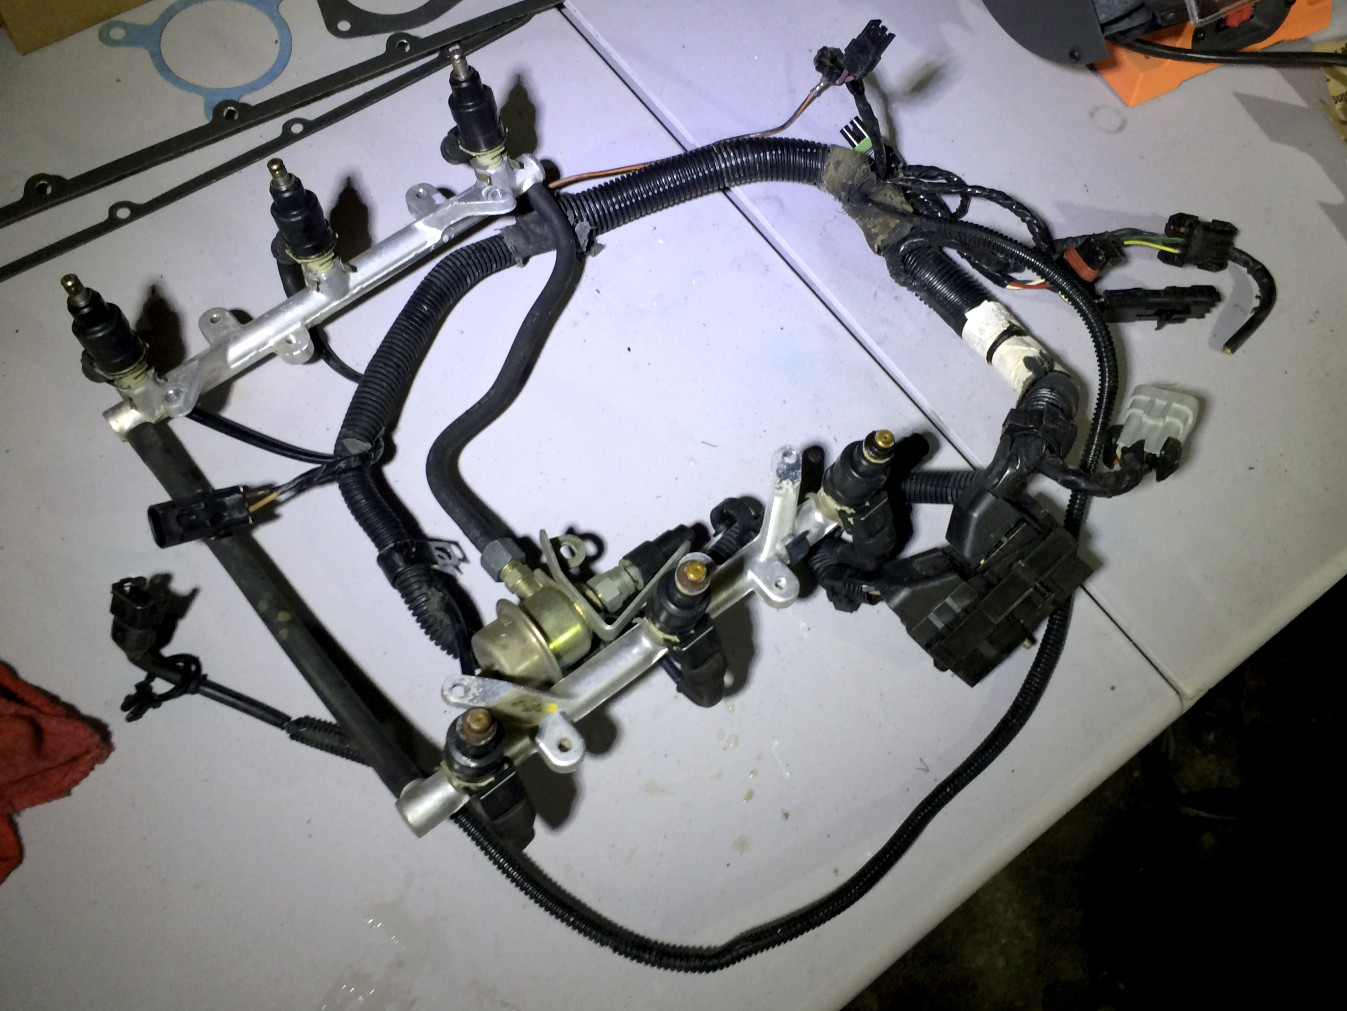 Removed fuel rails, injectors and harness.